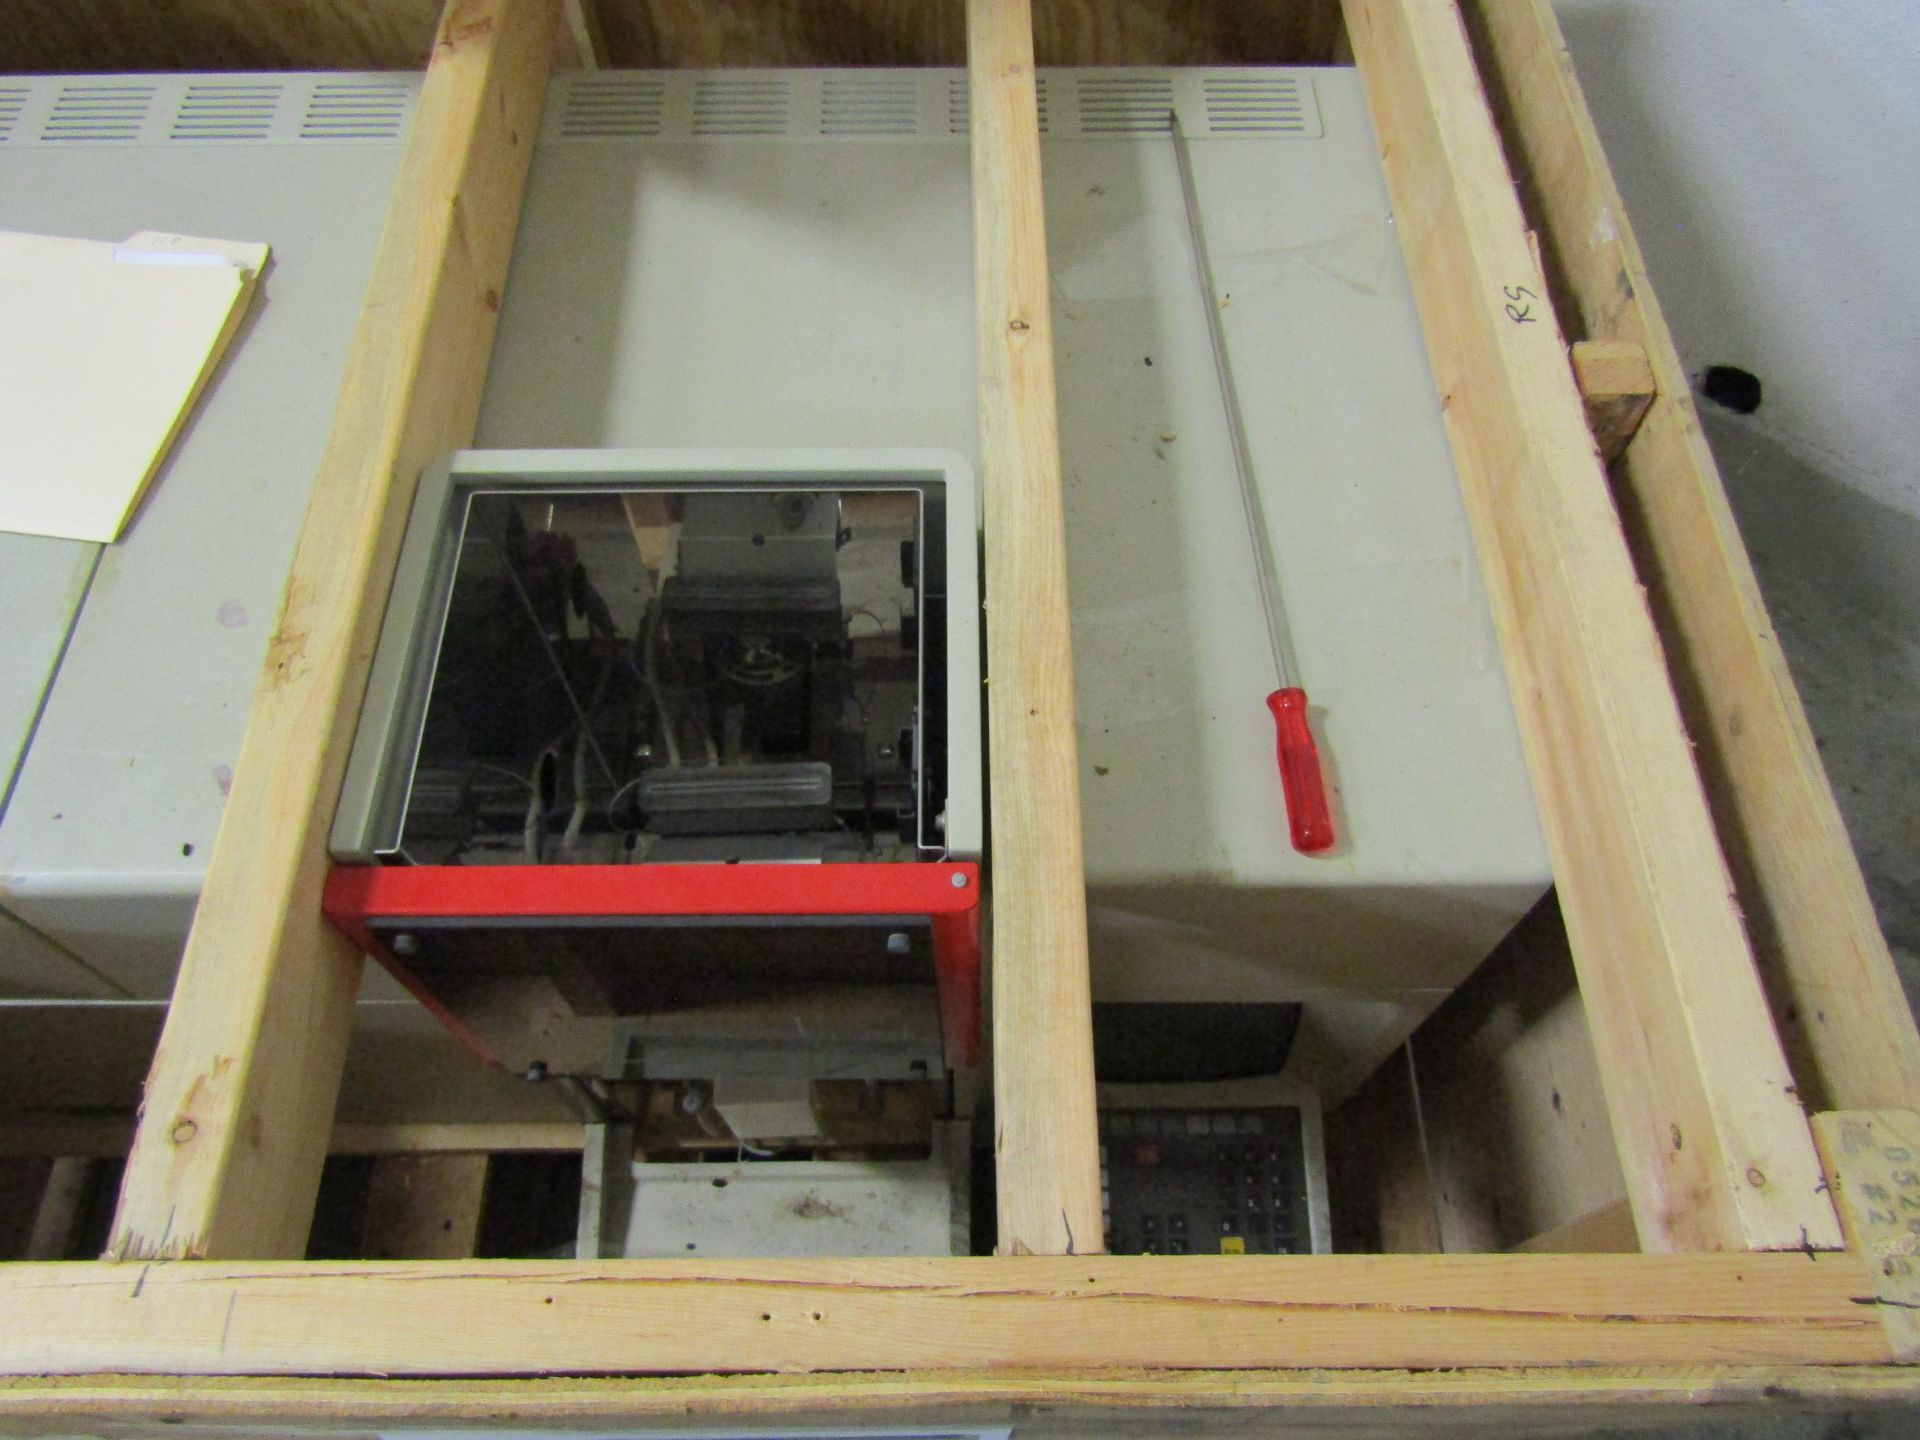 Lot 25 - PERKIN ELMER 1100B Atomic Absorption Spectrophotometer, Crated Not Tested/Not Operational